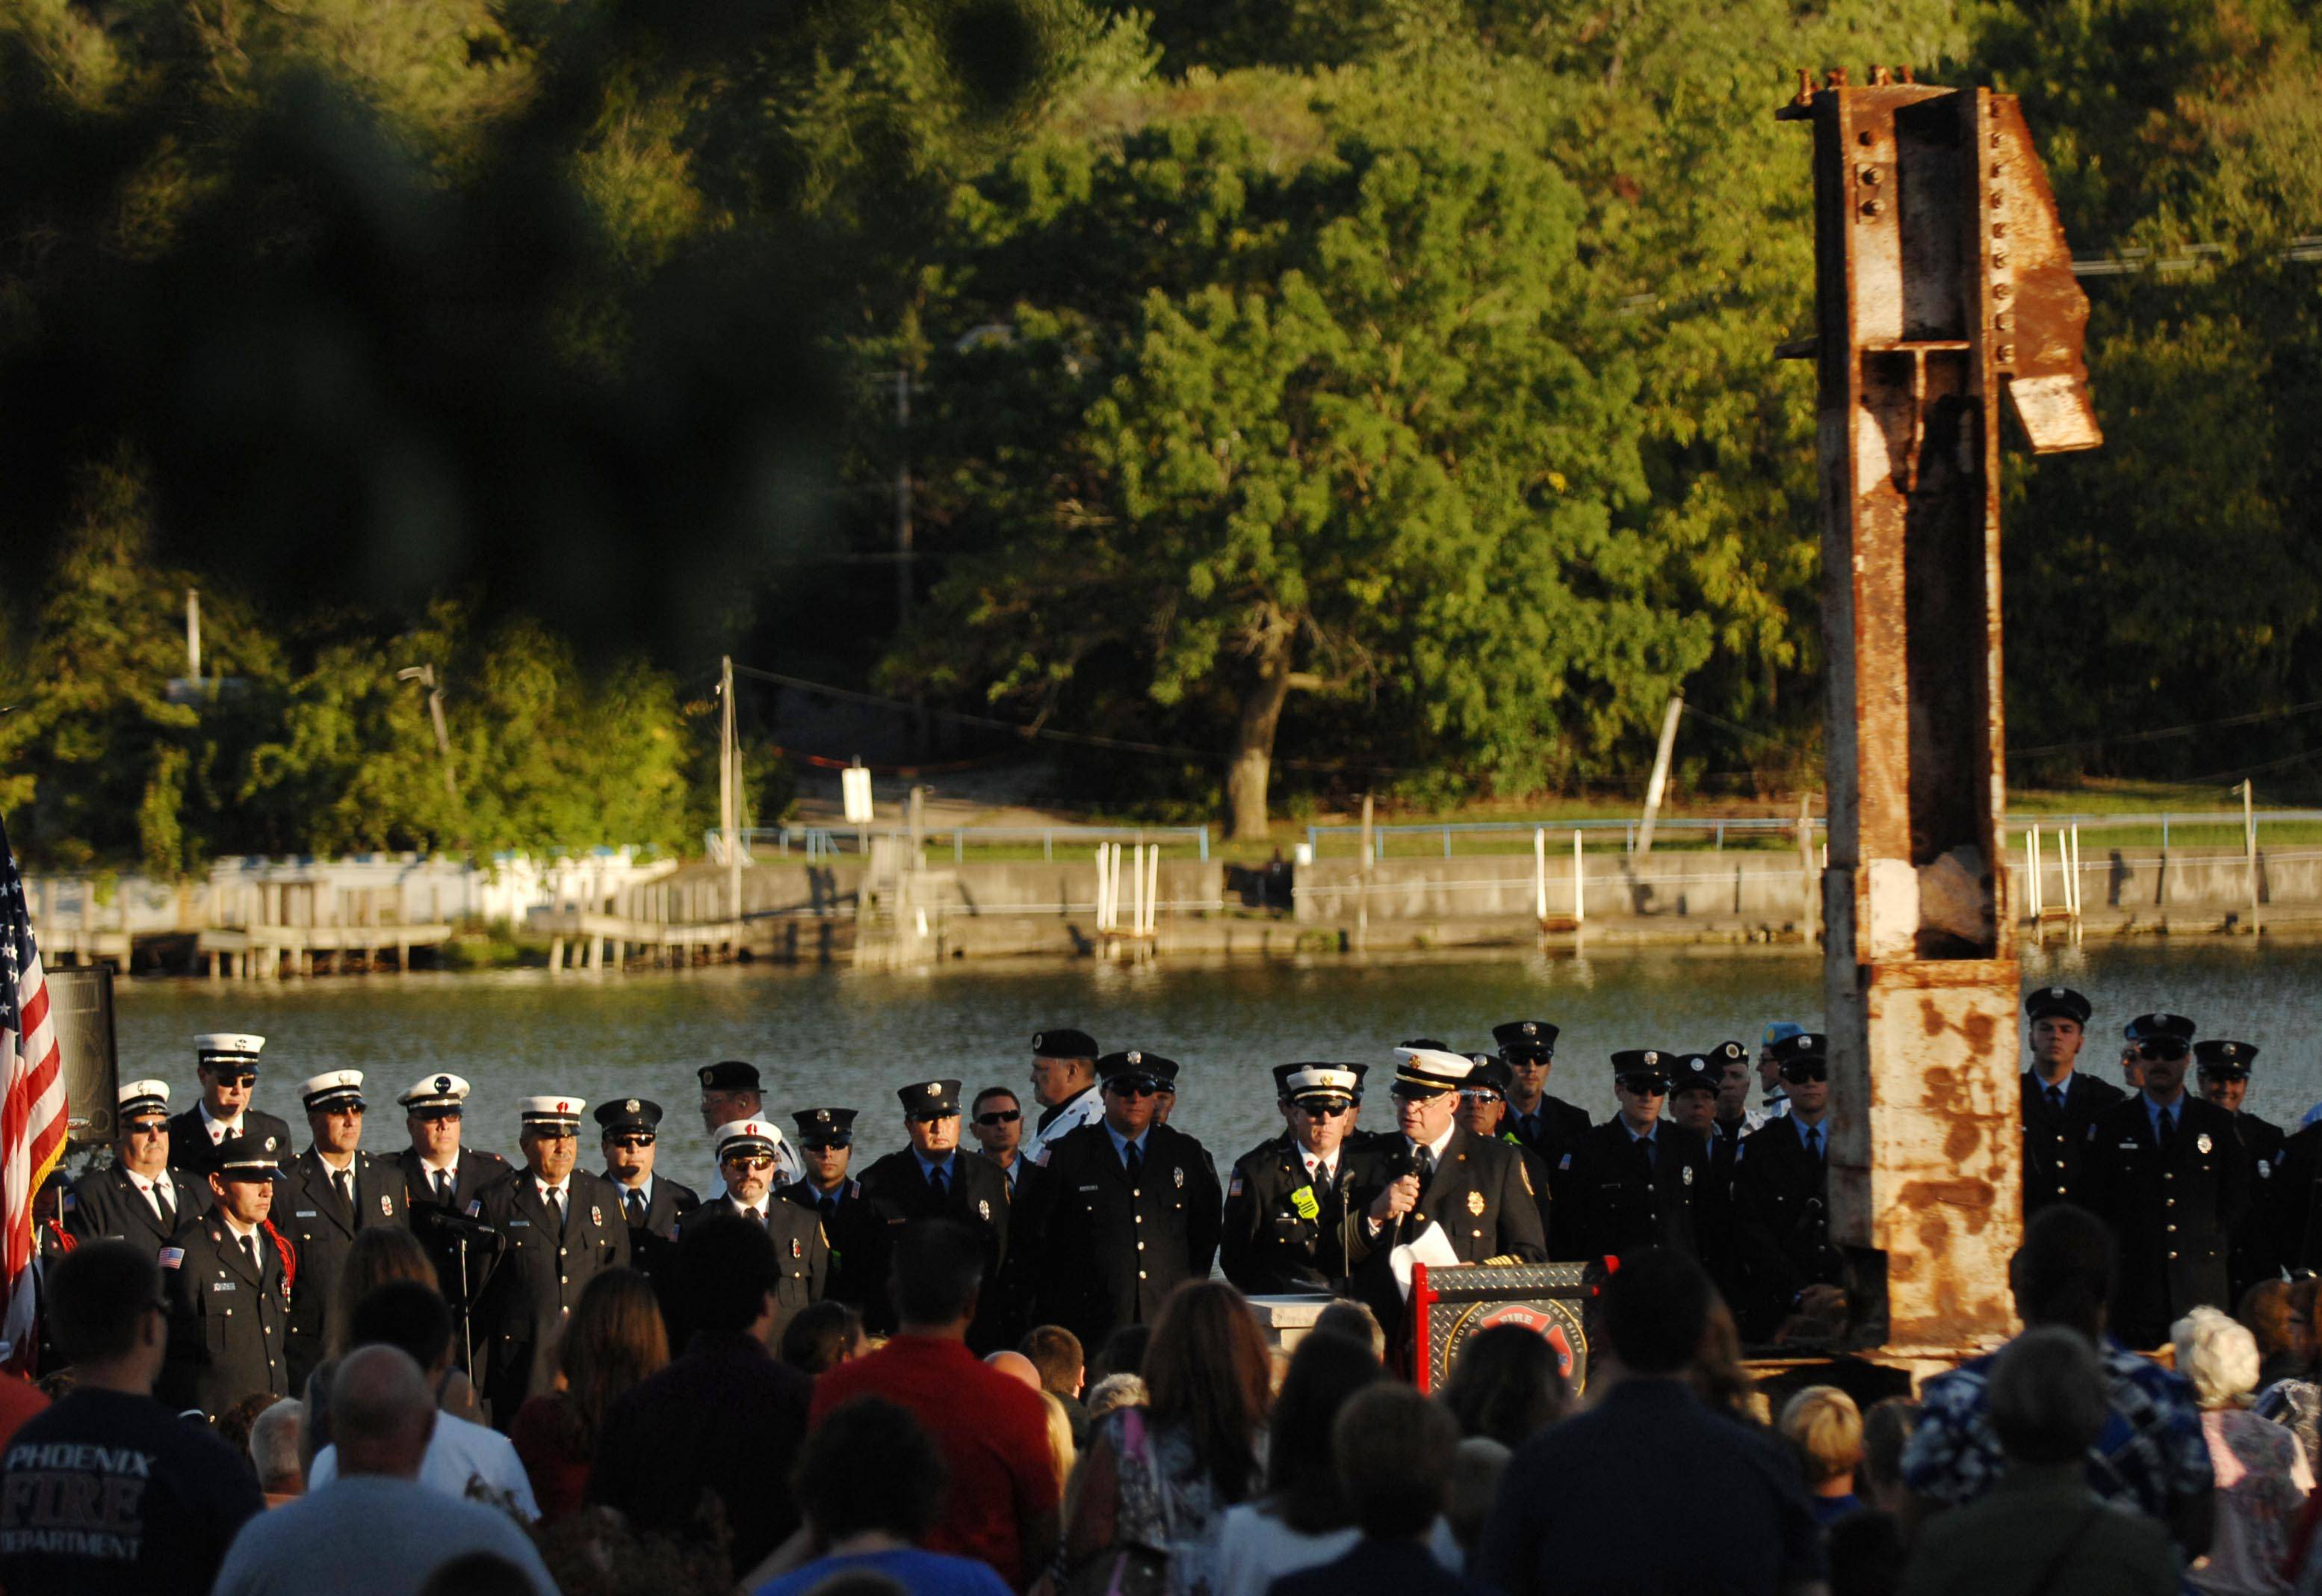 A crowd gathered at the Fox River in Algonquin in 2012 for the unveiling of a firefighter memorial that features a beam from the World Trade Center. Wauconda officials are discussing creating a heroes memorial with a beam in a local park.